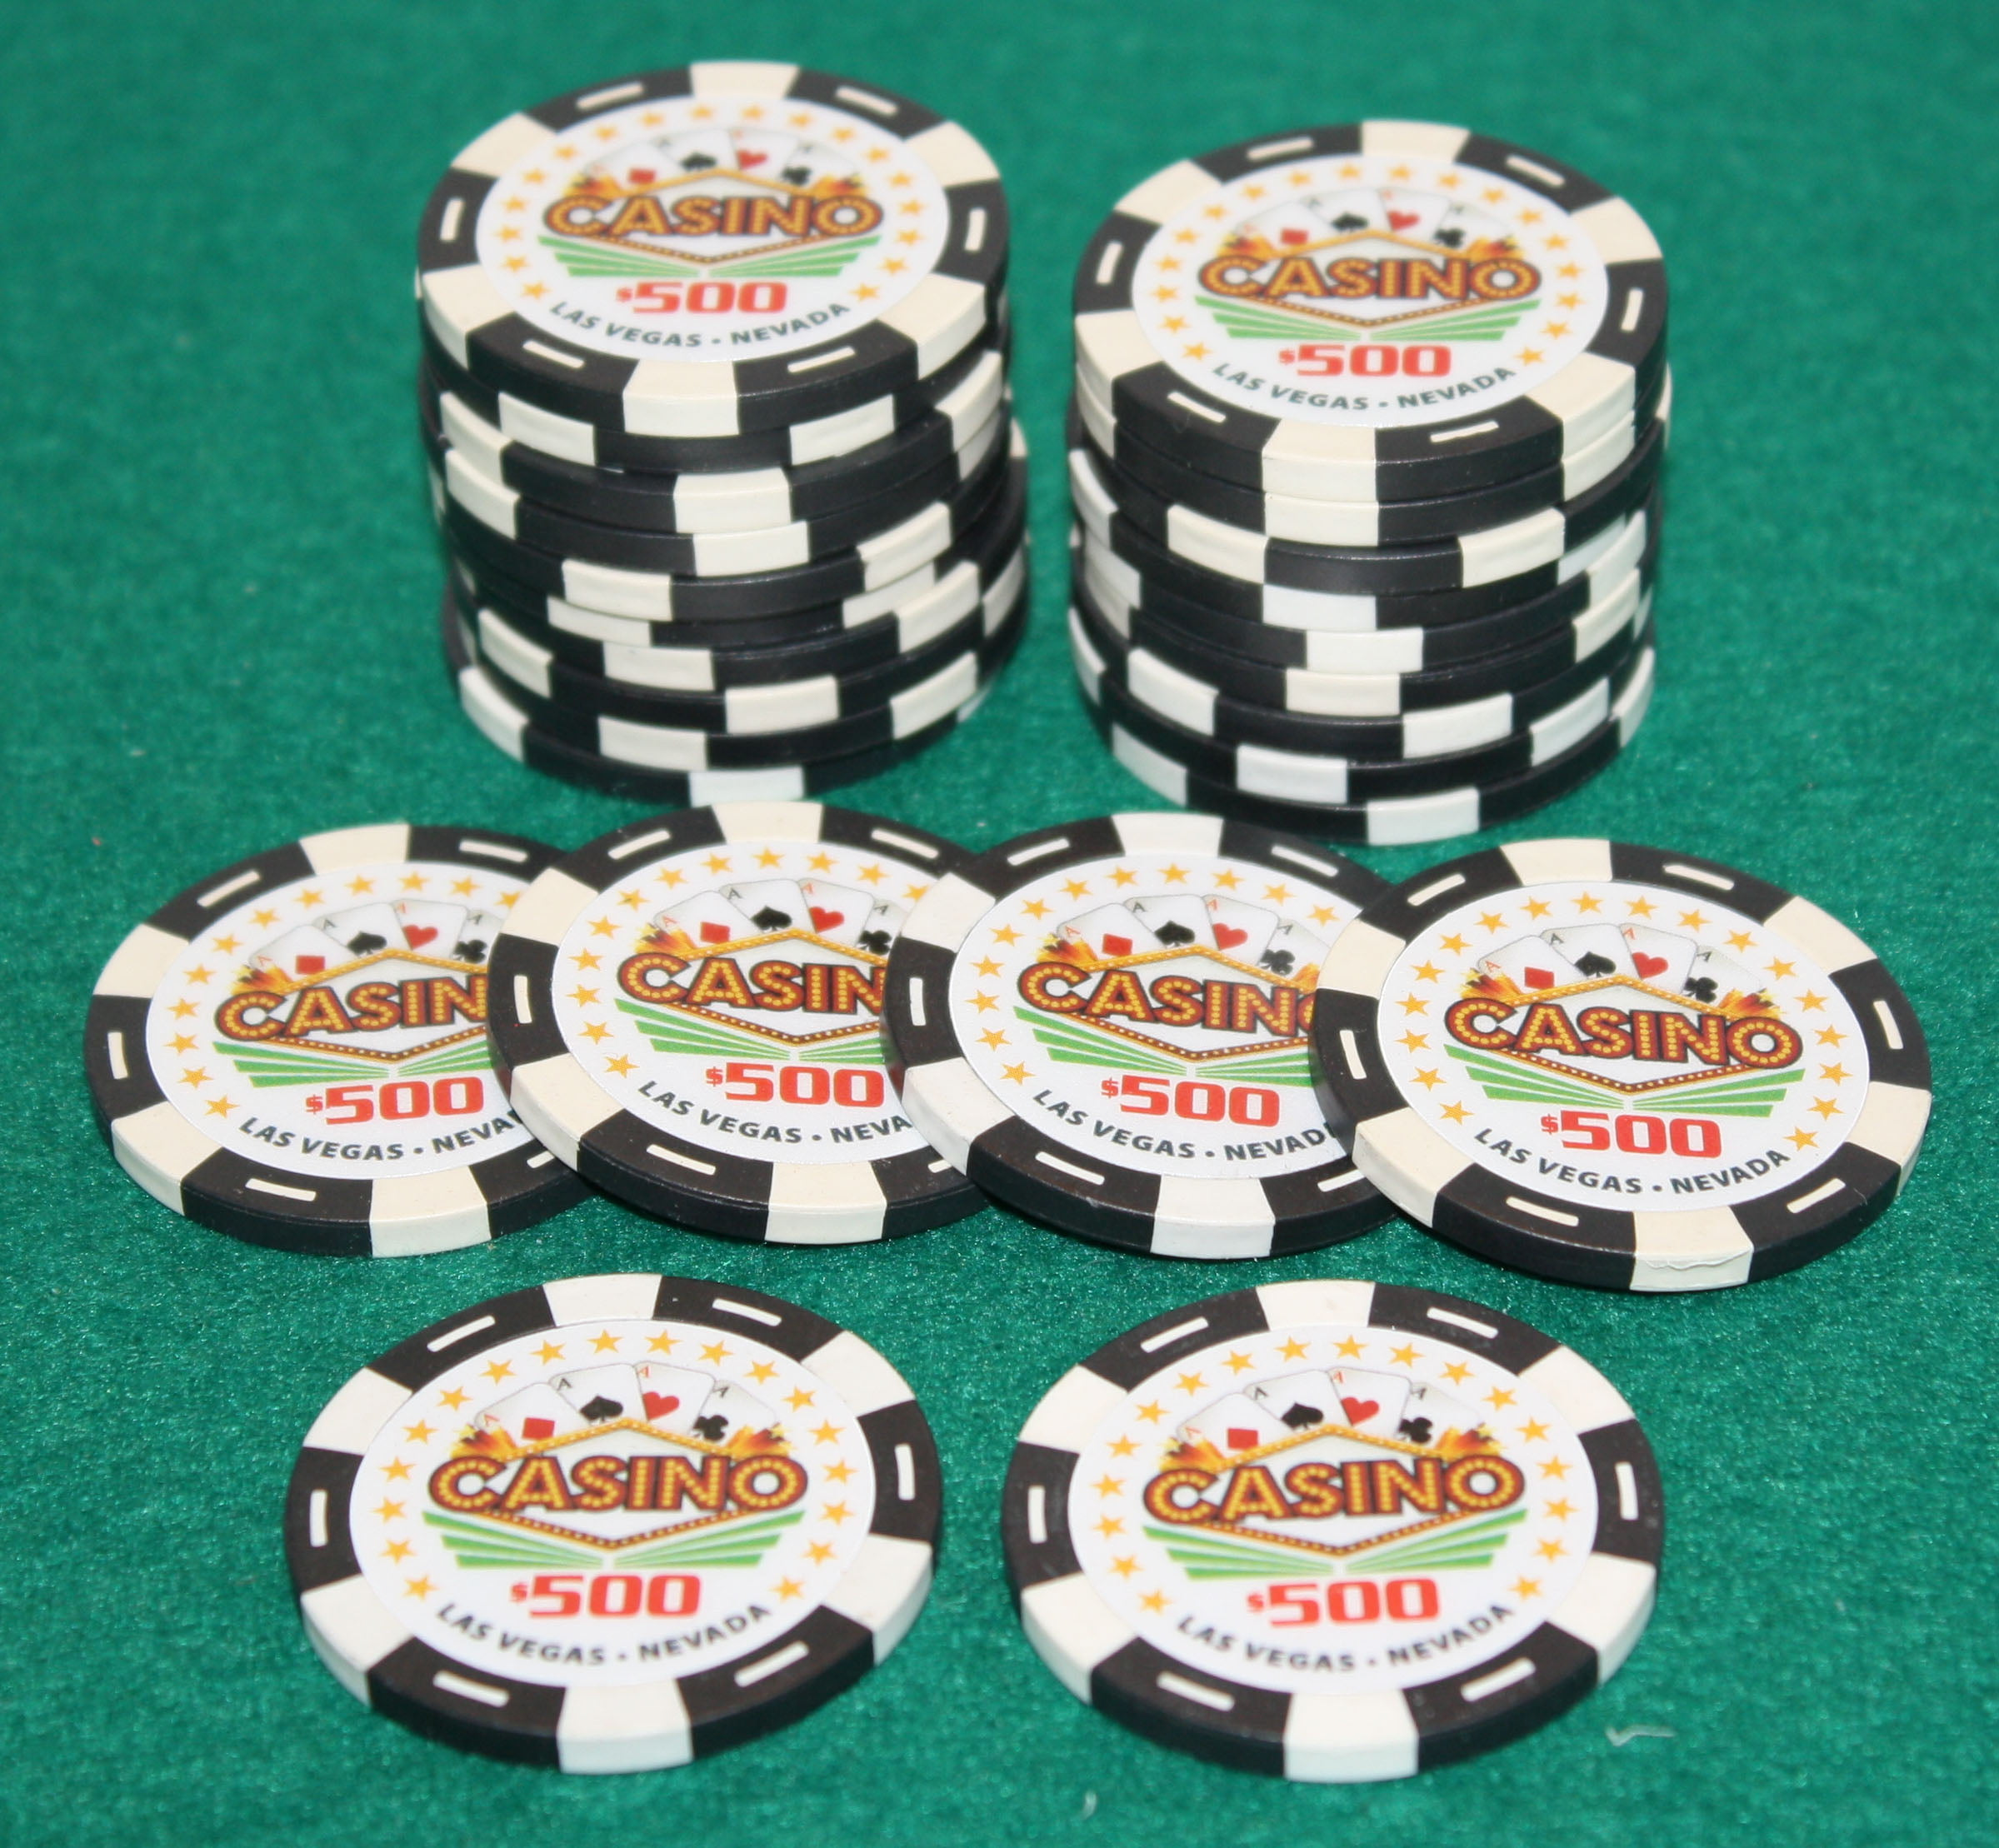 $500 Pro Vegas Casino Chips *Super High Quality* Poker Chip 11.5 Grams (QTY: 25) by